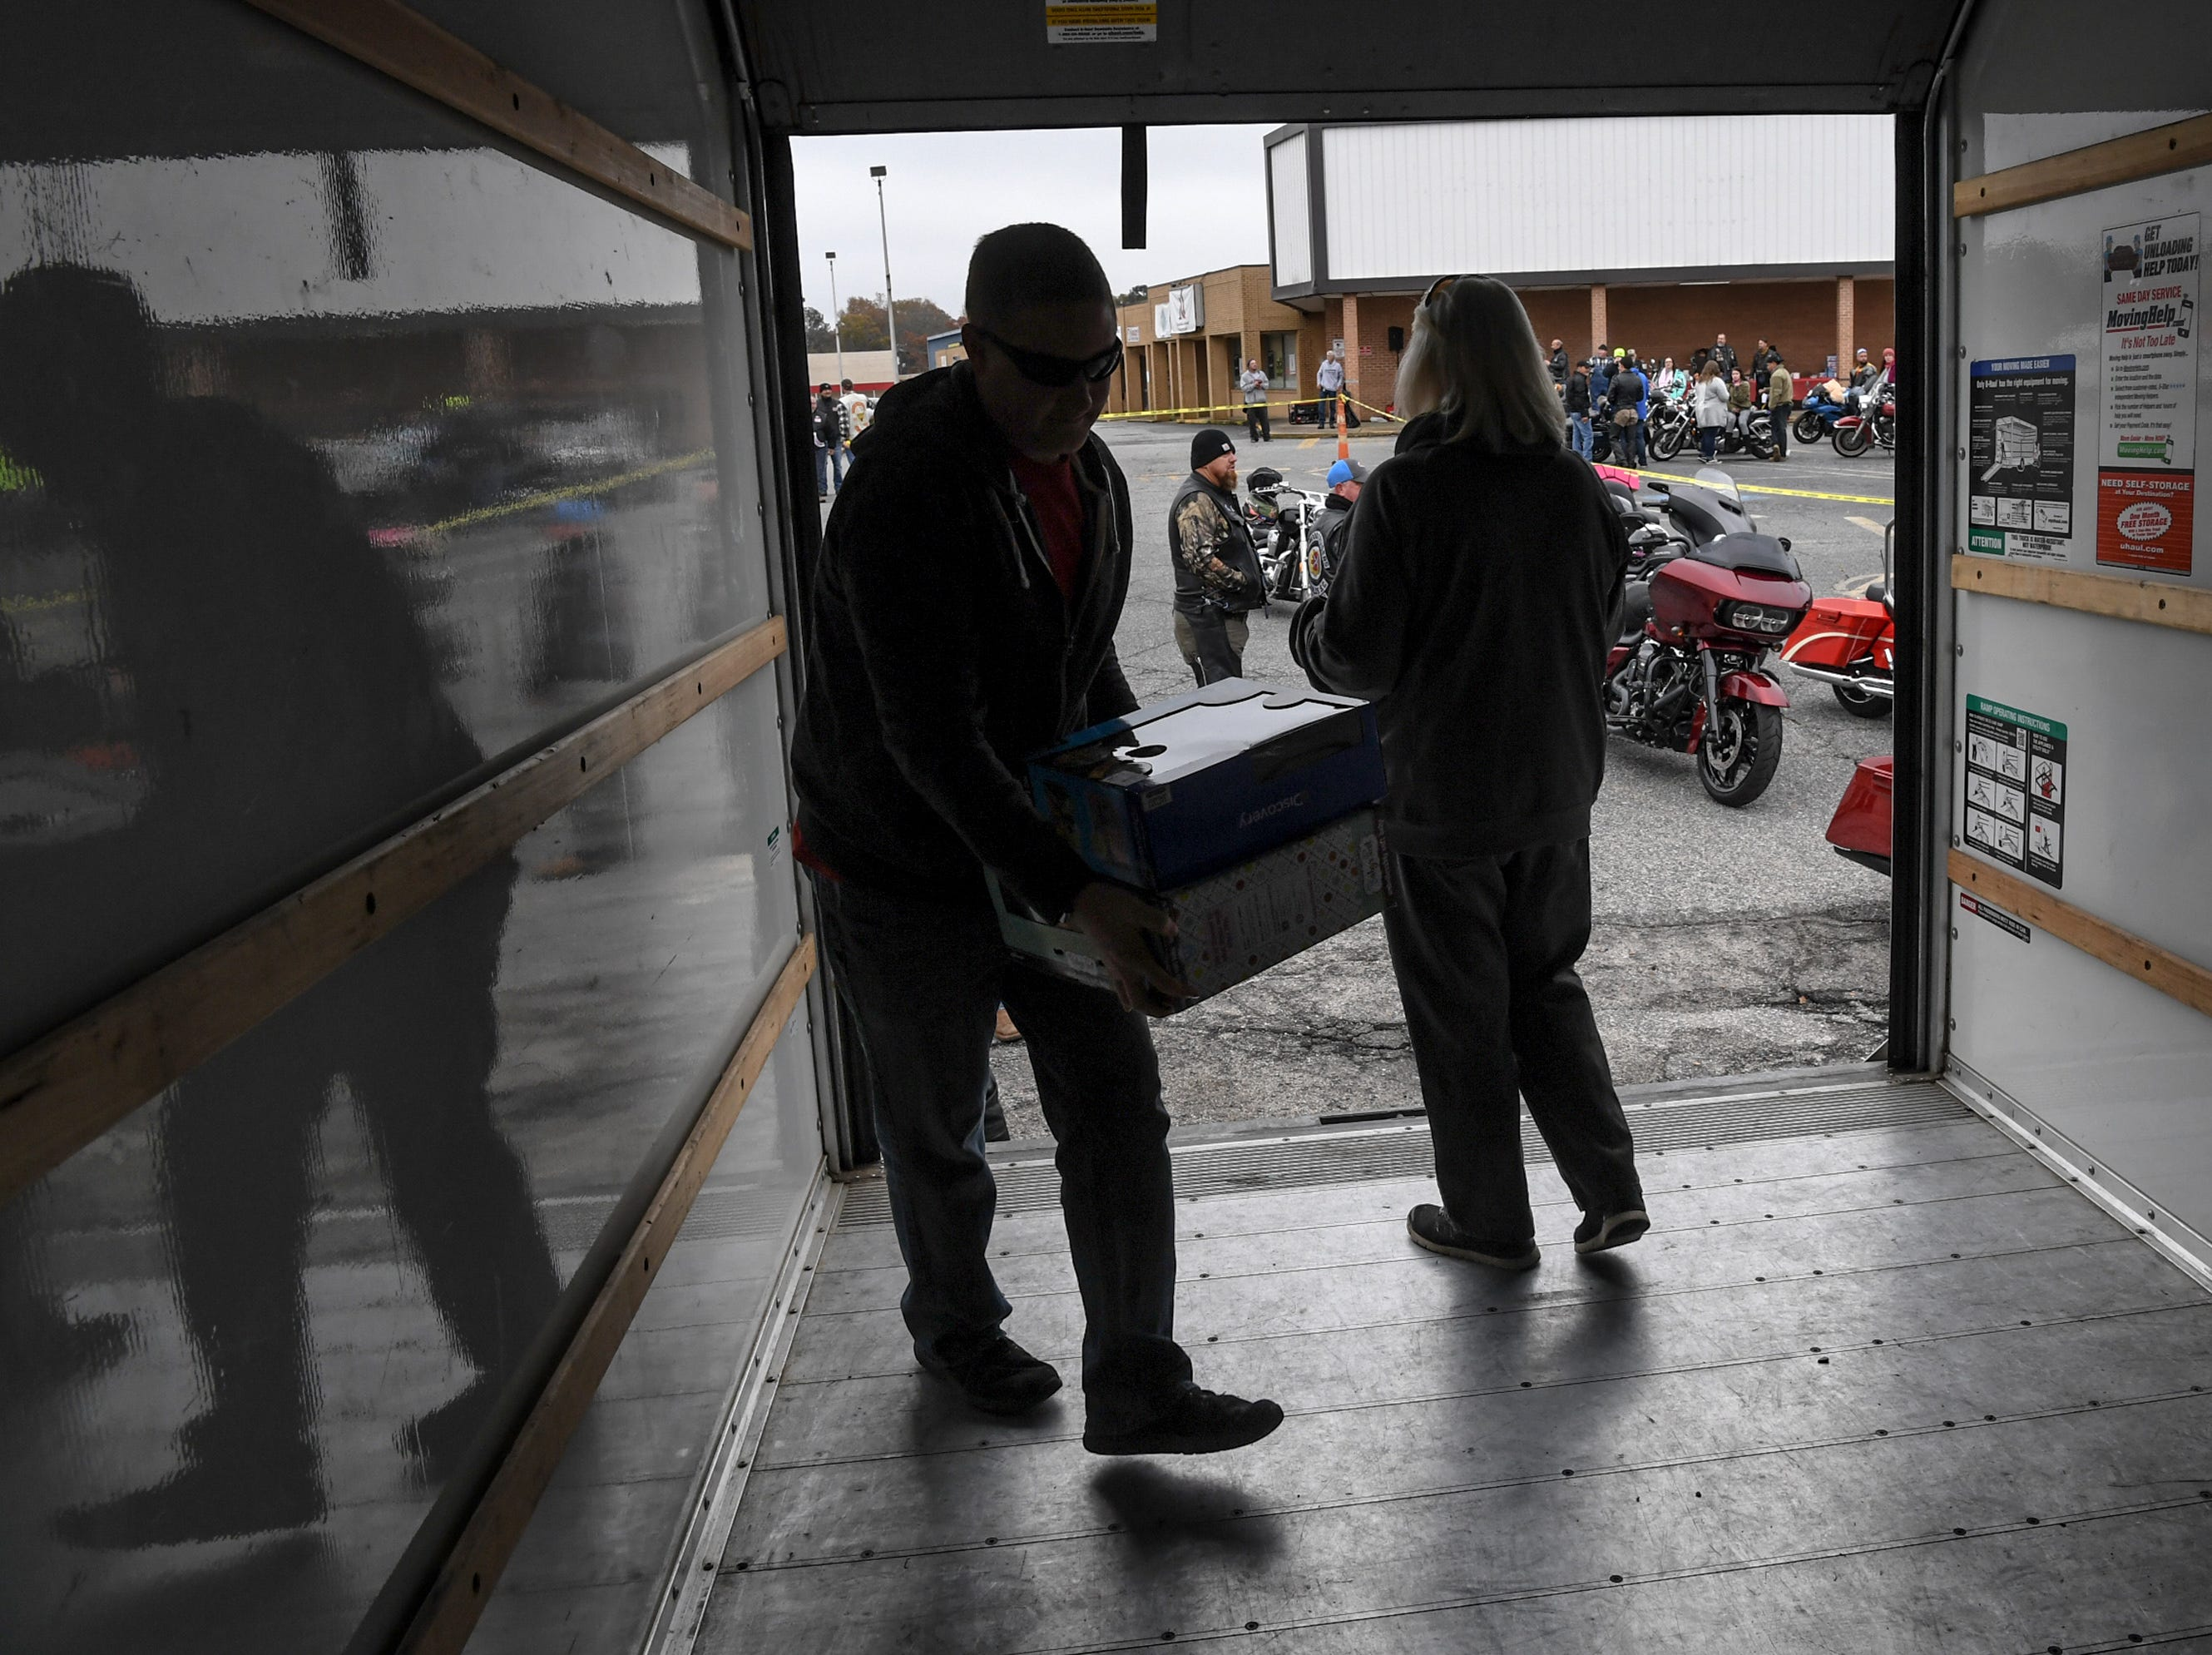 """Keith Dunham, left, and Debbie Wilbanks, right, of White Jones Hardware in Anderson wait for toys to be donated before the 38th Jack Hurley Toy Parade in Anderson on Sunday, November 25, 2018. The parade started at White Jones Hardware parking lot in the Watson Village, followed along Main Street to the Civic Center of Anderson where toys were donated to Anderson Cares and Shares. Organizer Robert """"Little Man"""" Fagg said about 350 families are helped out with toys for Christmas."""